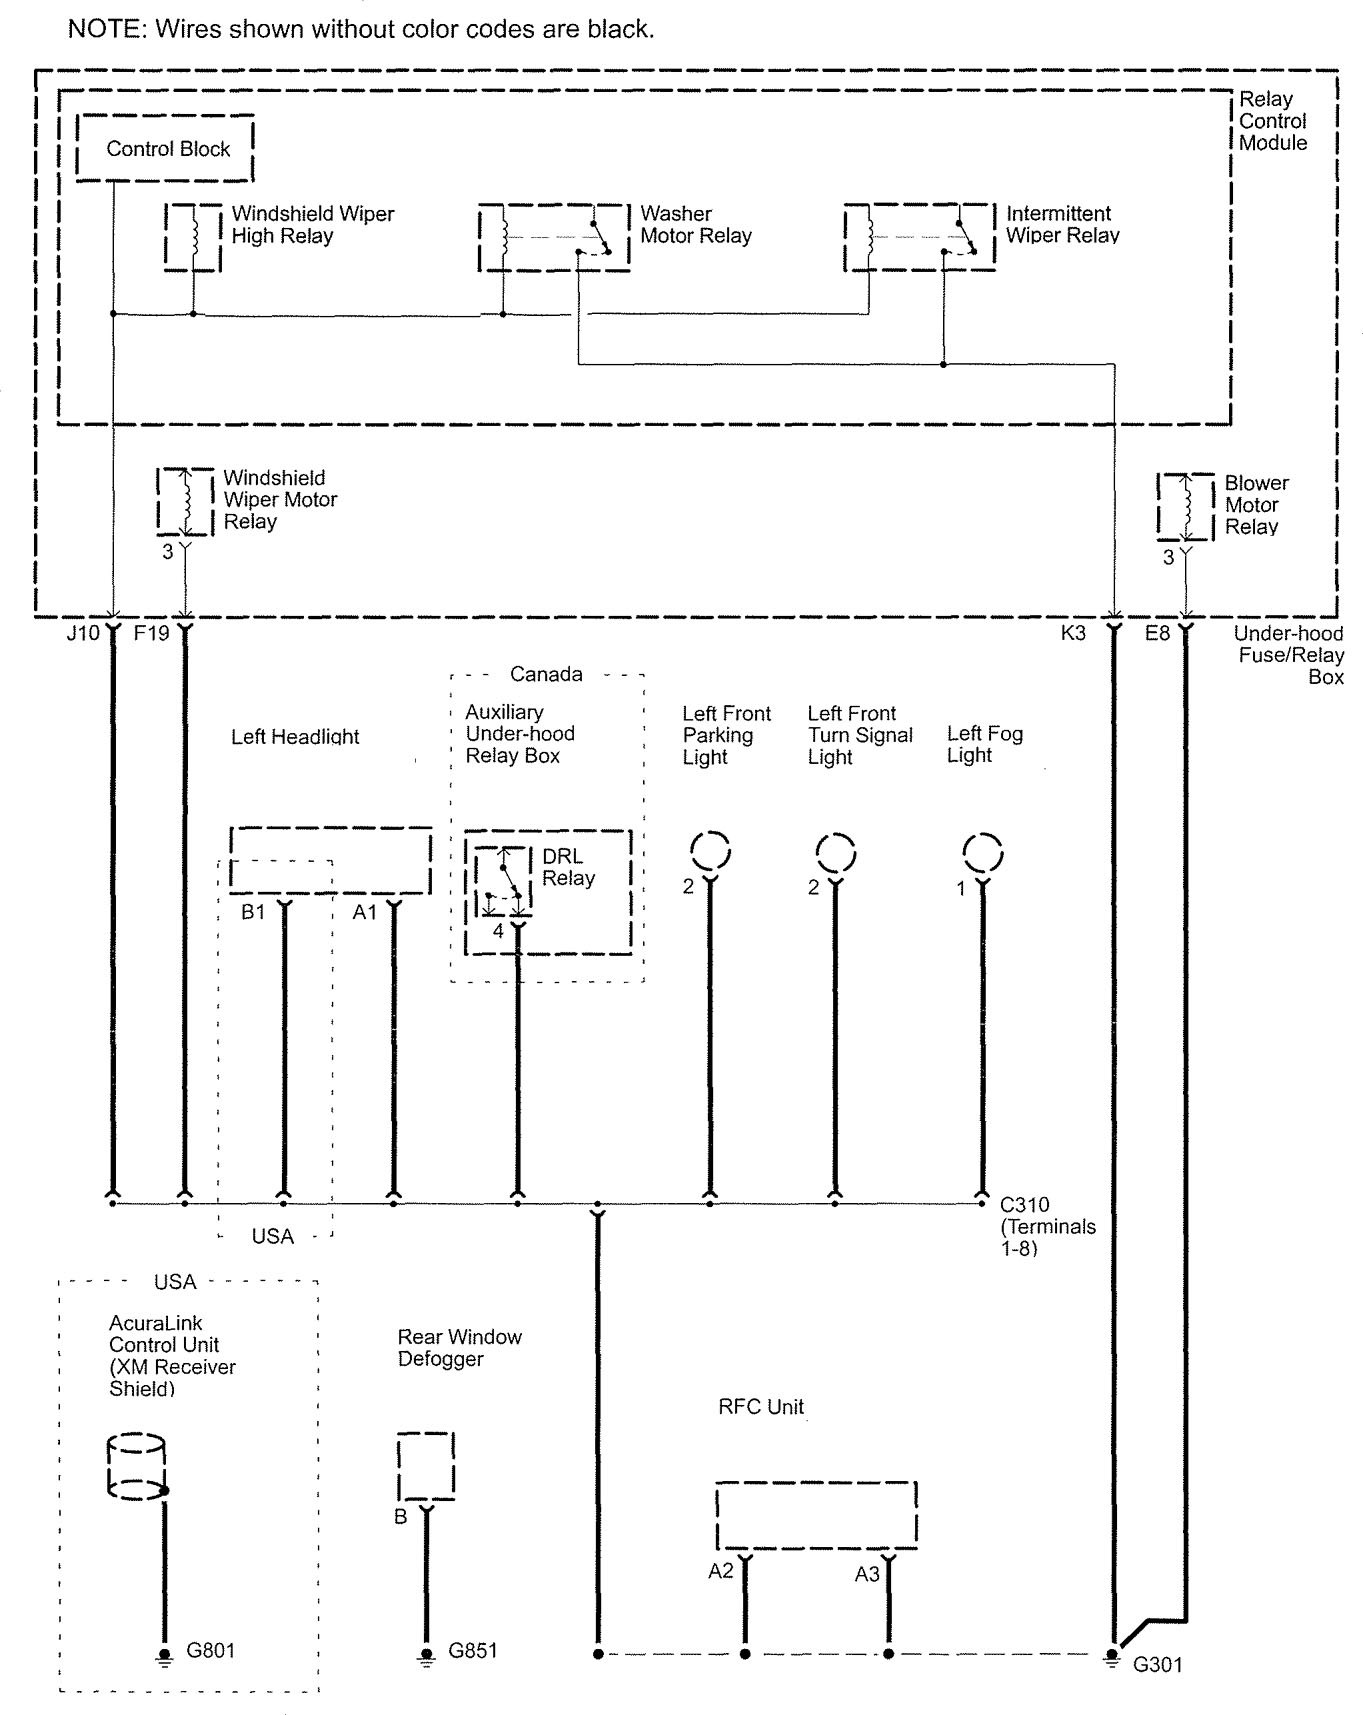 WRG-7265] Radio Wiring Diagram 1998 Acura Slx on